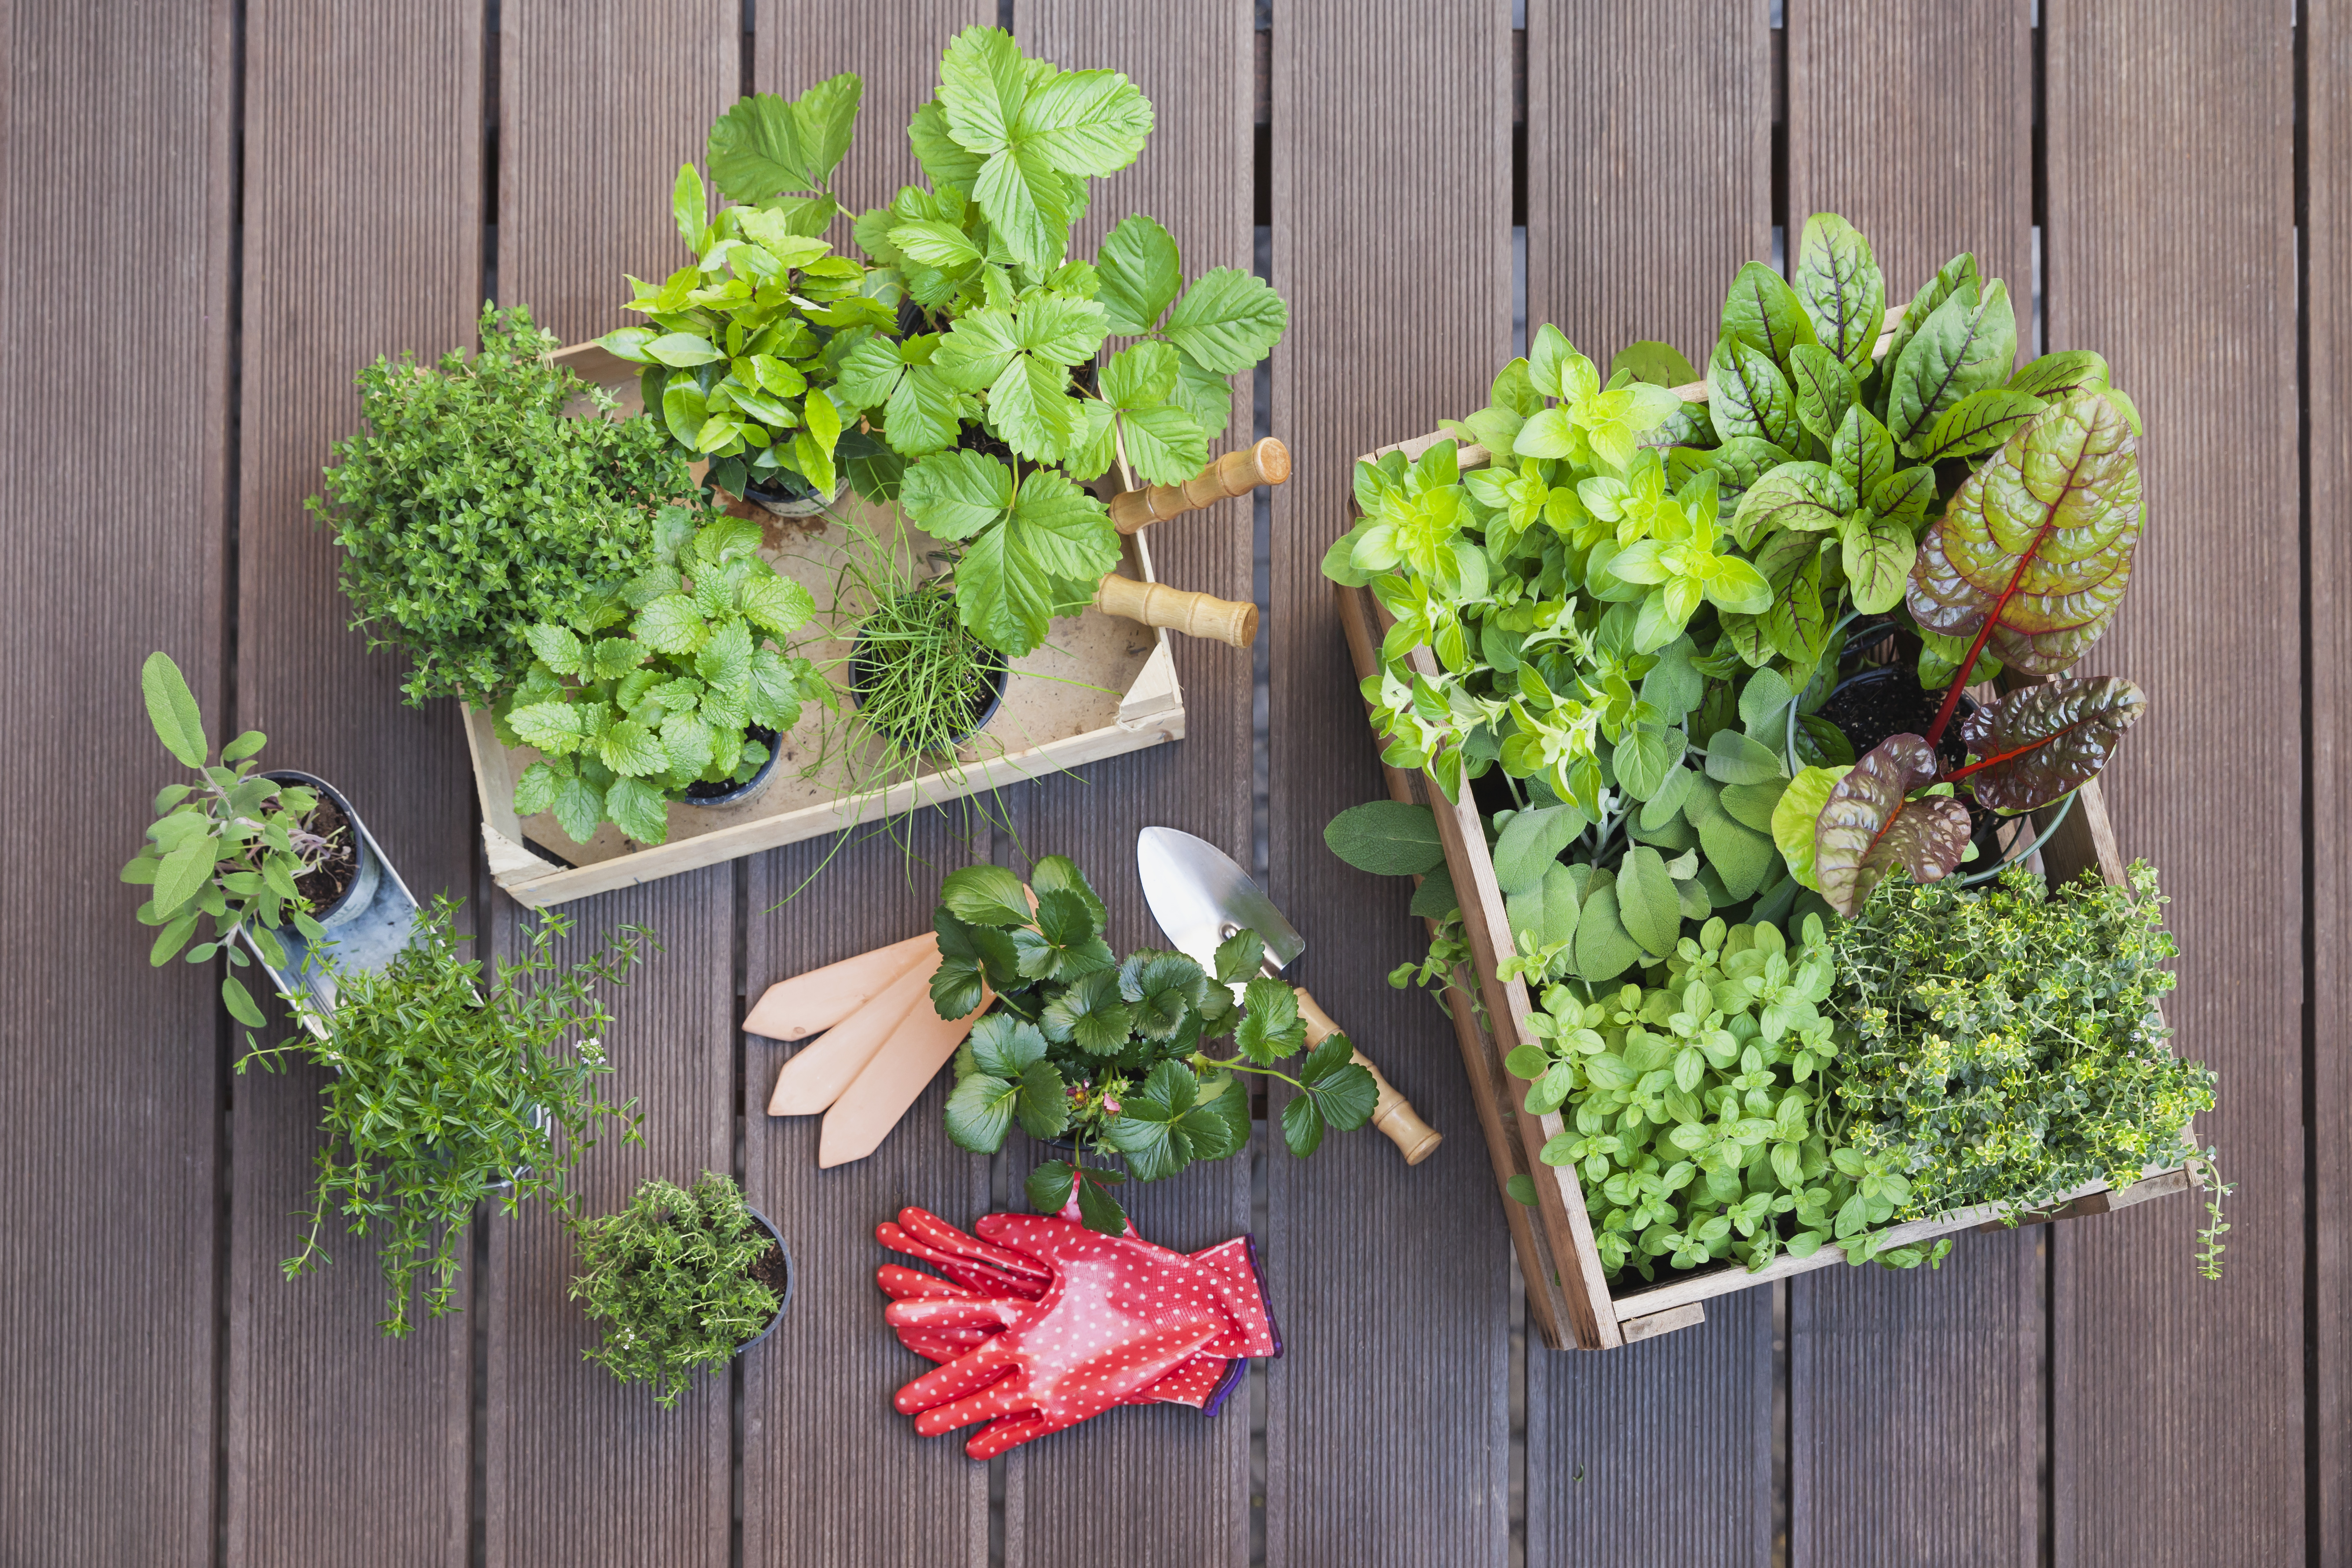 What Kind Of Soil Do You Use In Containers For Vegetables Home